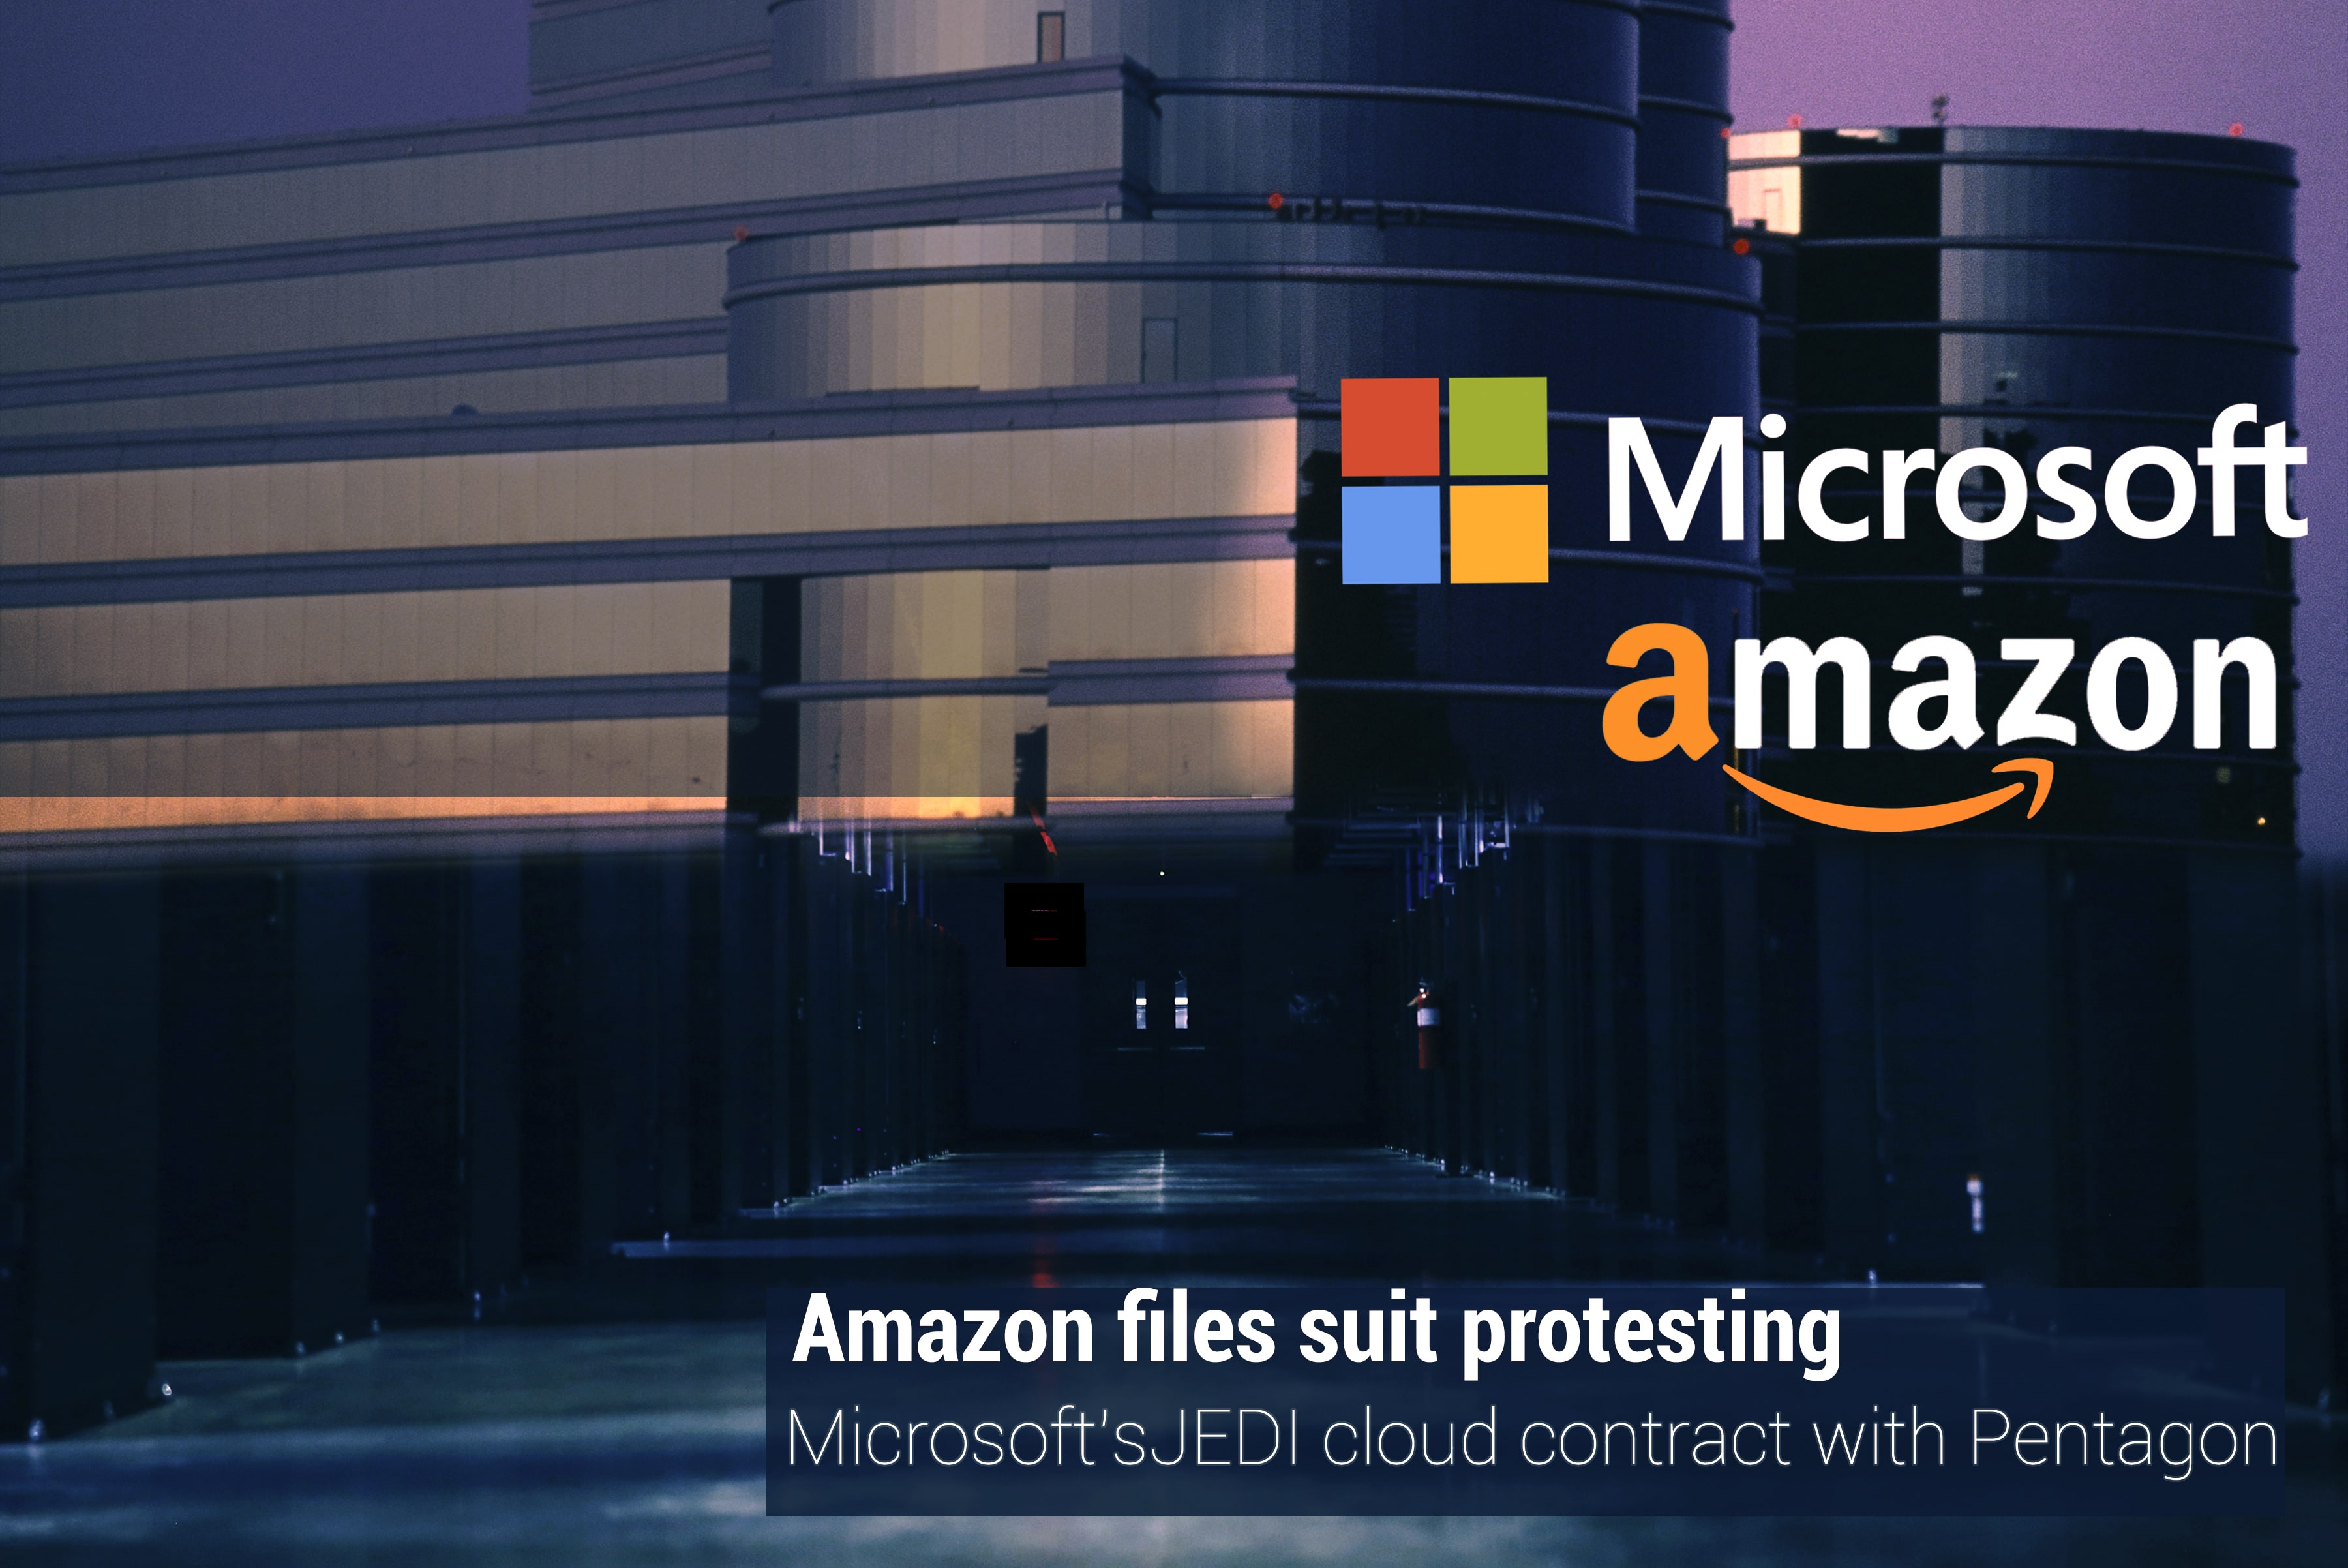 Amazon files lawsuit against JEDI cloud Contract of Microsoft with Pentagon